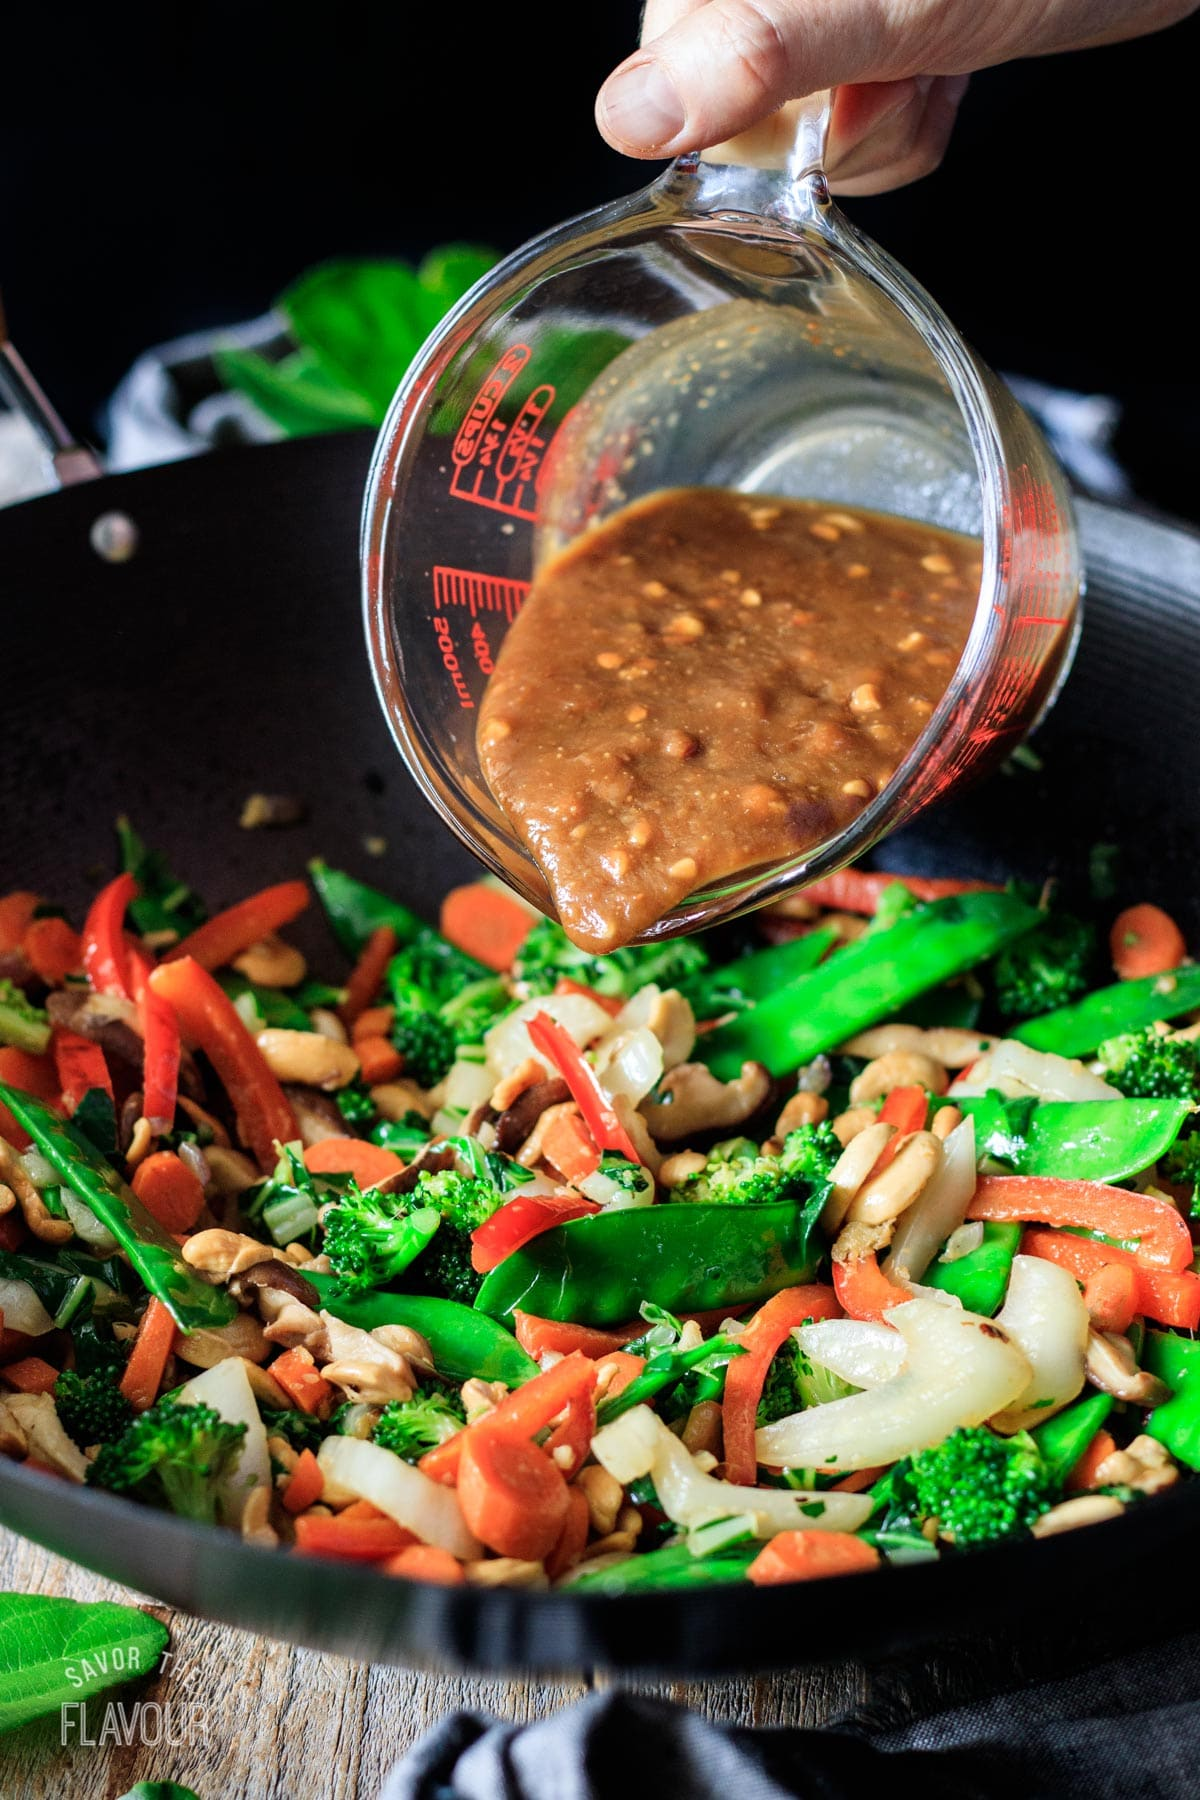 pouring the peanut sauce into the stir fry